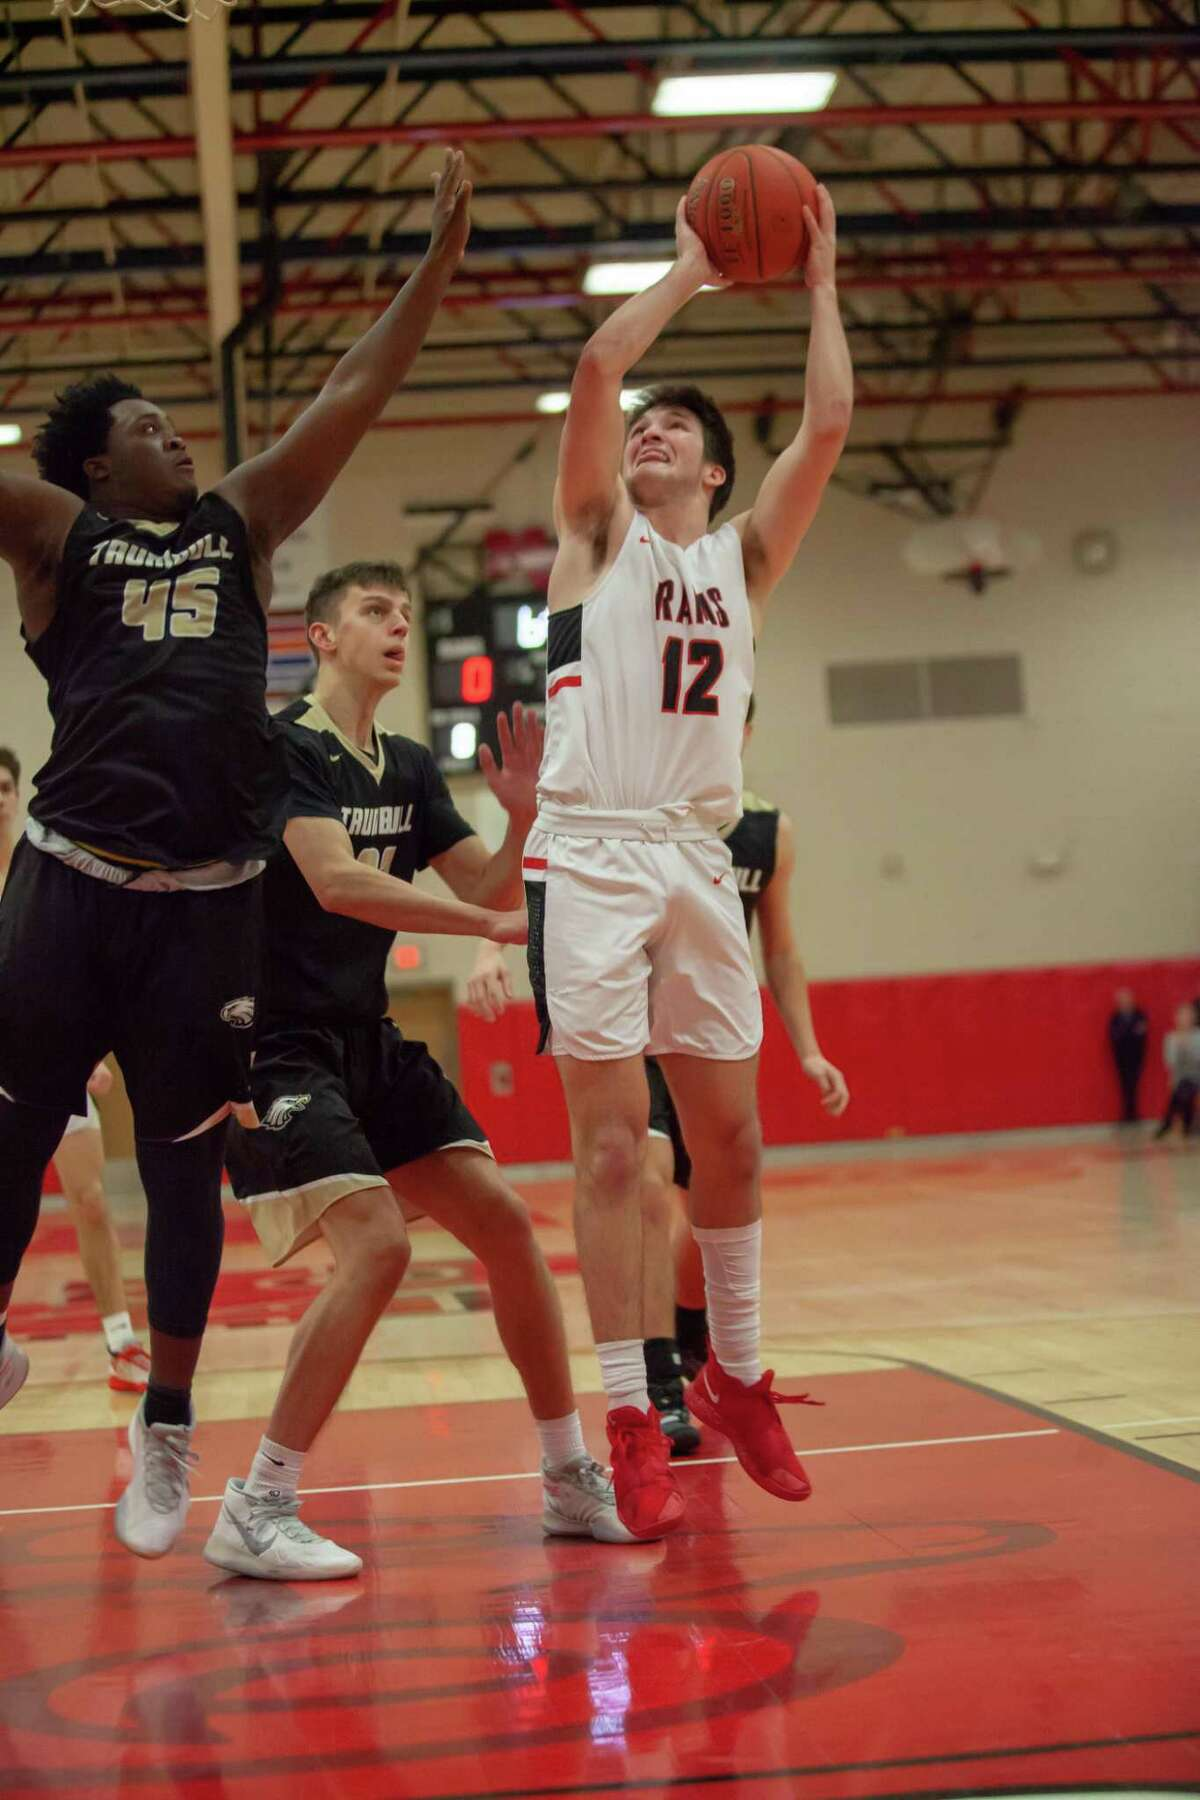 Trumbull's Quentar Taylor (45) defends against New Canaan's Christian Sweeney (12) in a boys basketball game on Friday, Jan. 24, 2020.